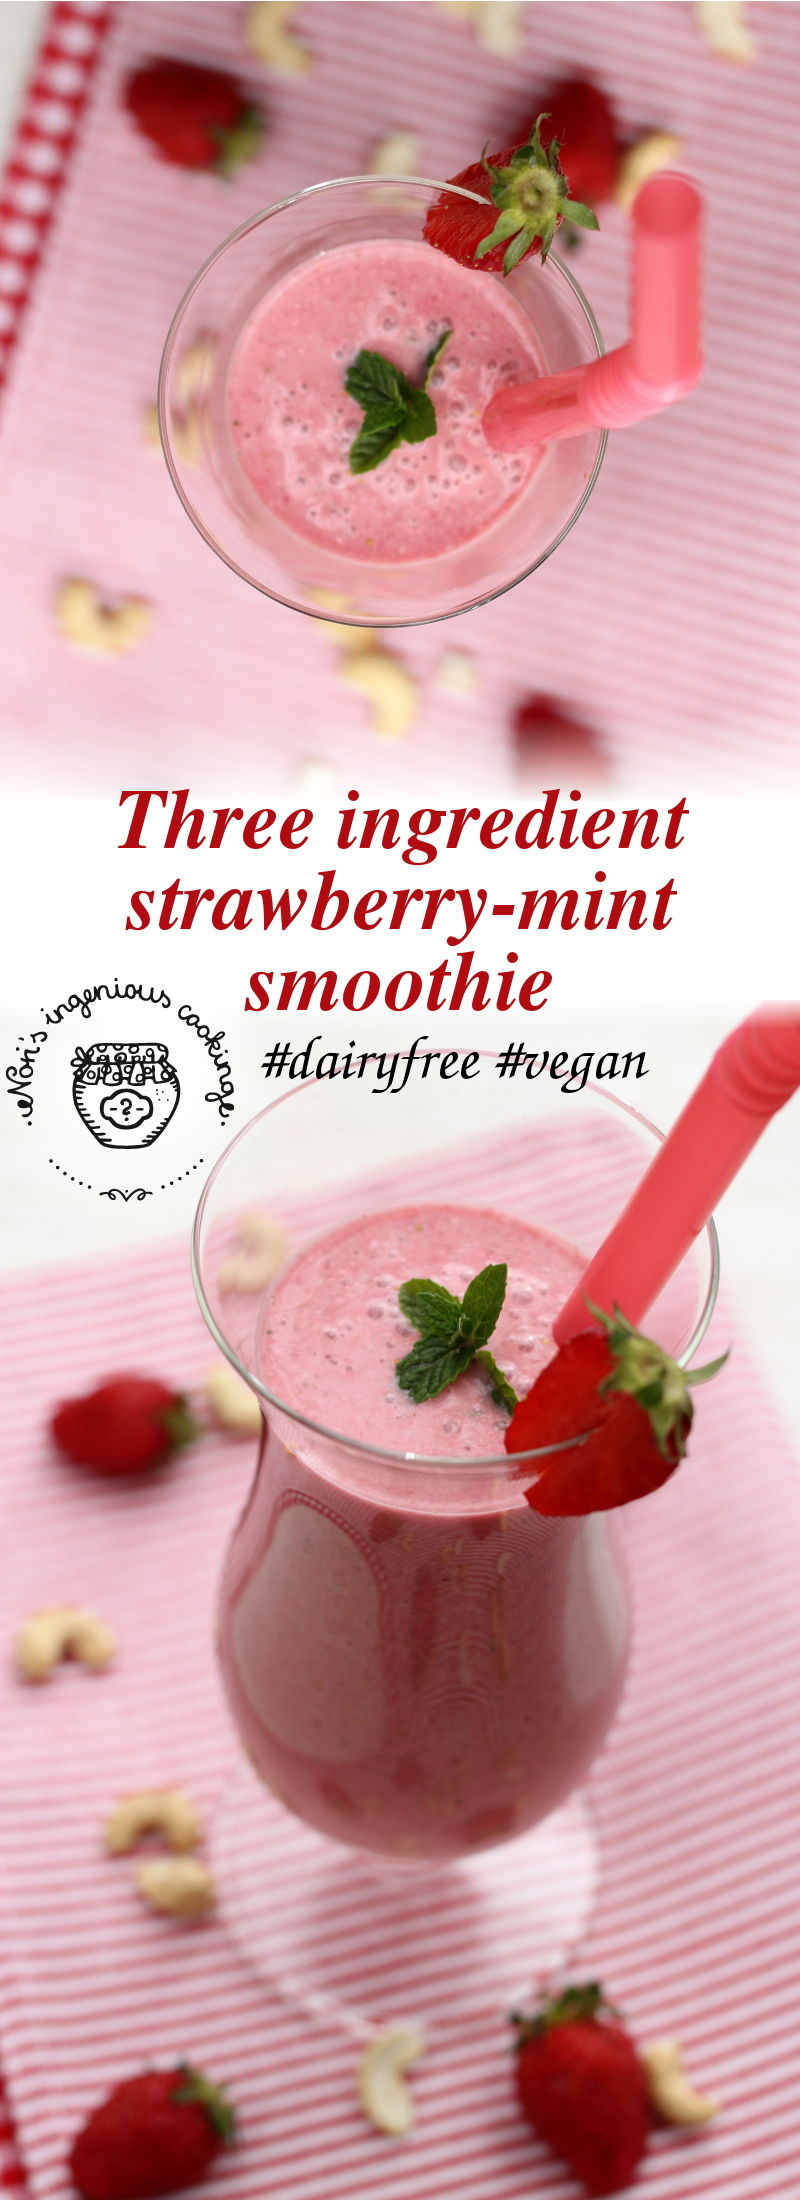 Strawberry-mint smoothie (vegan)